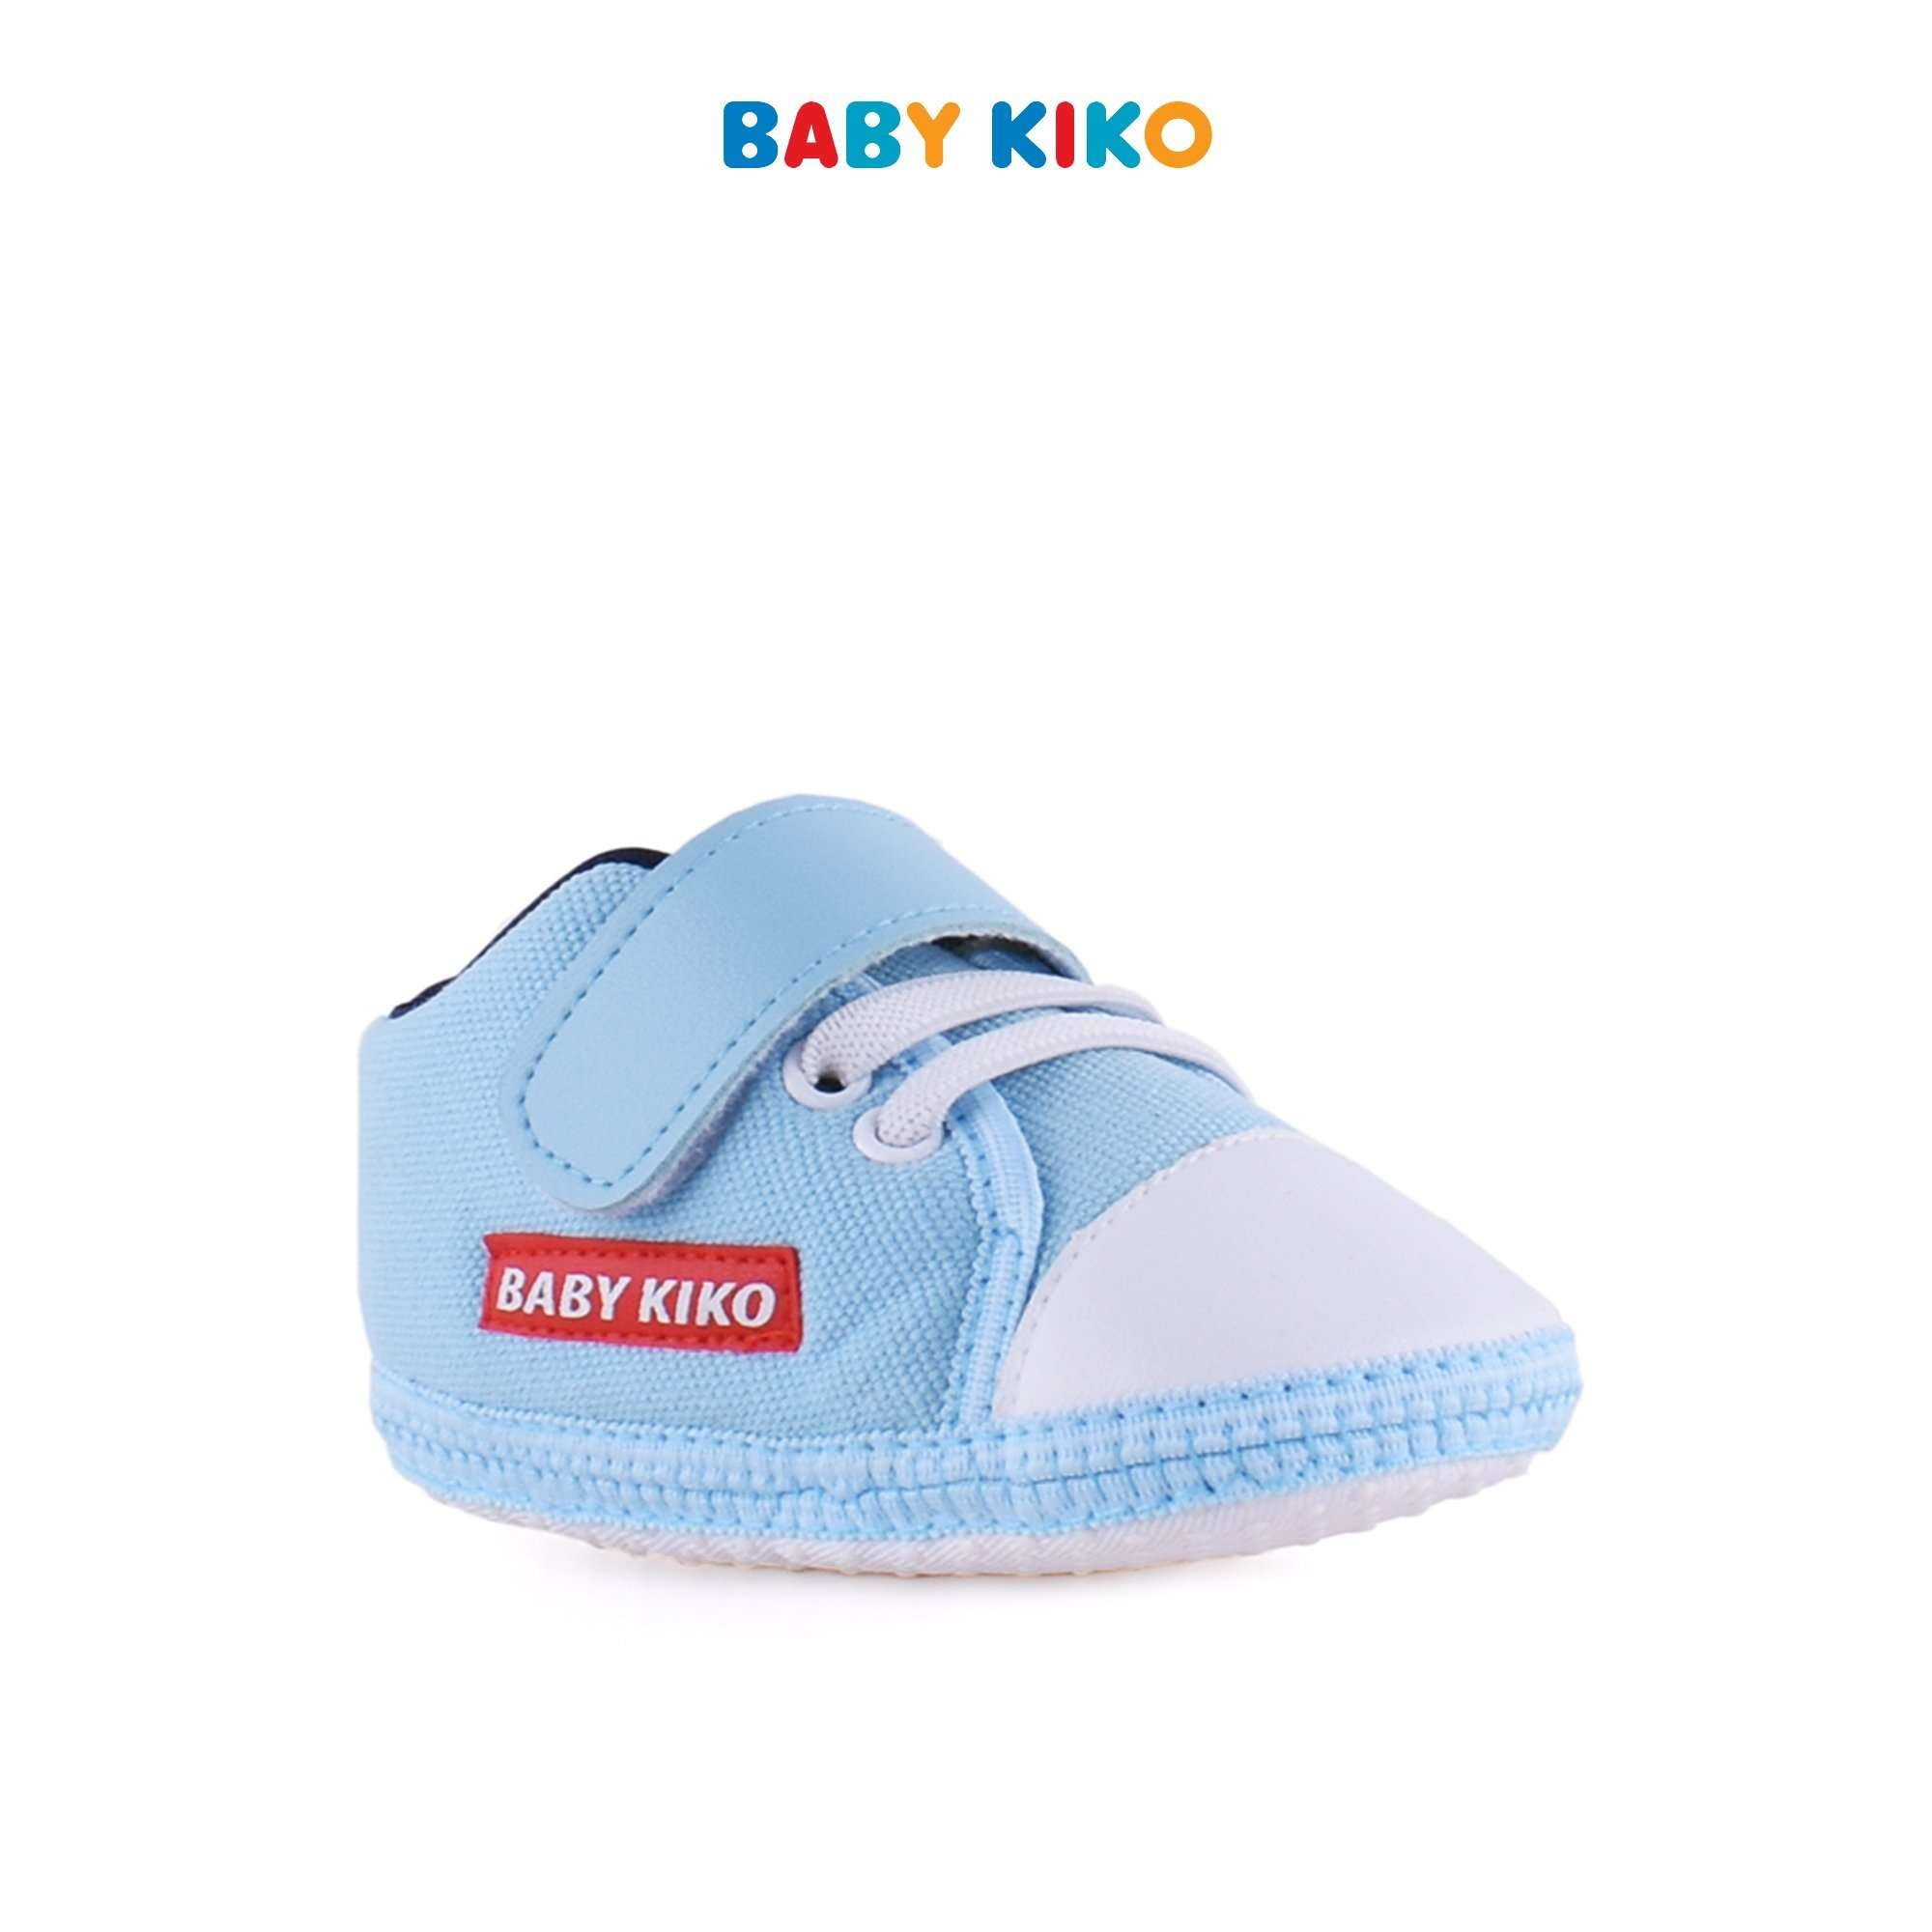 Baby KIKO Baby Boy Textile Shoes - Blue B921106-5085-L5 : Buy Baby KIKO online at CMG.MY